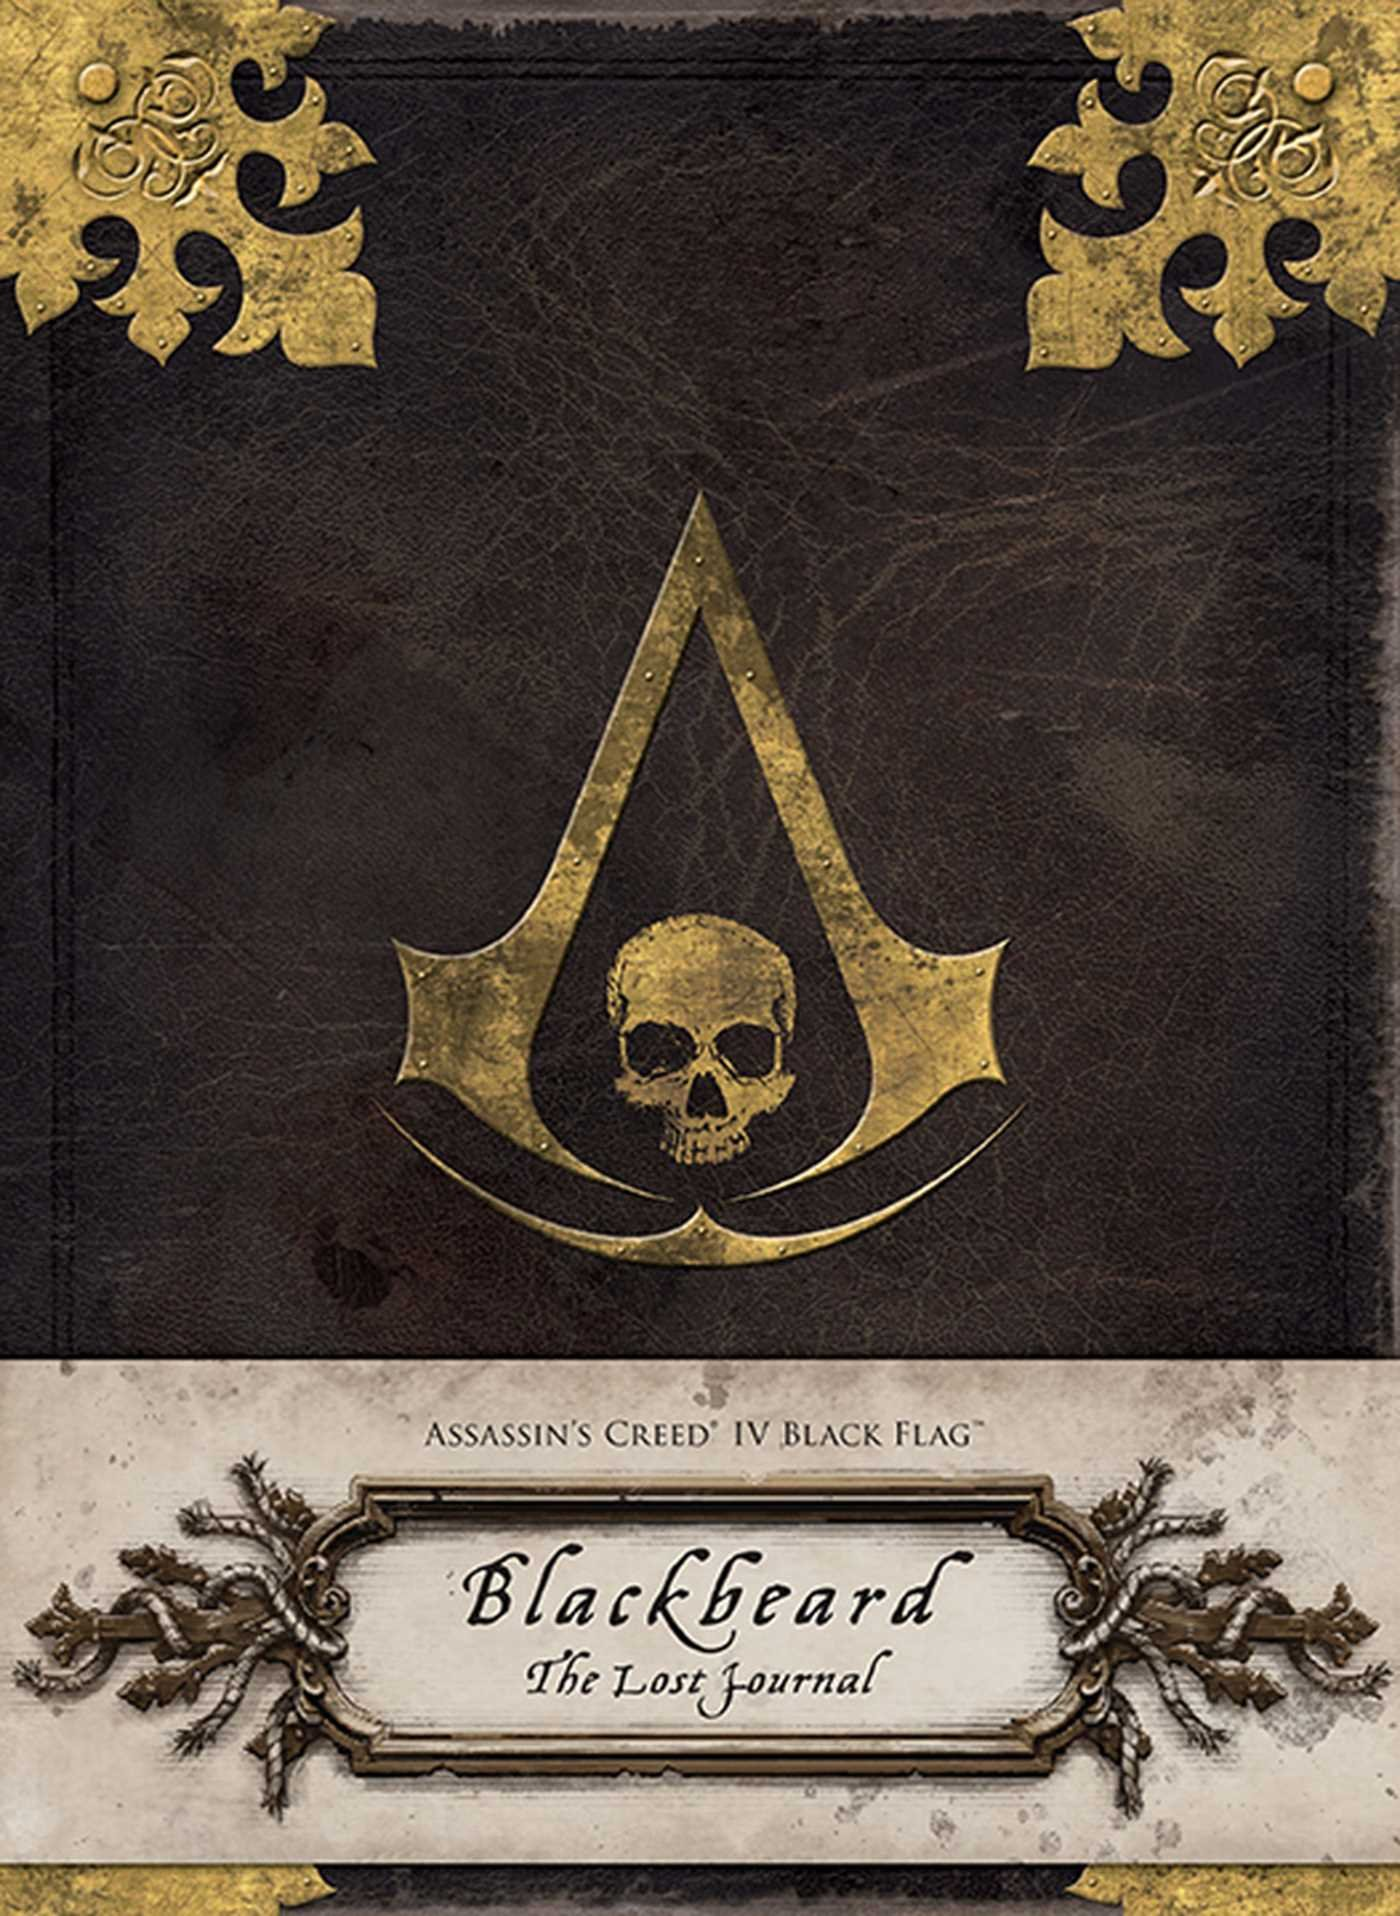 Assassins Creed Iv Black Flag Blackbeard The Lost Journal